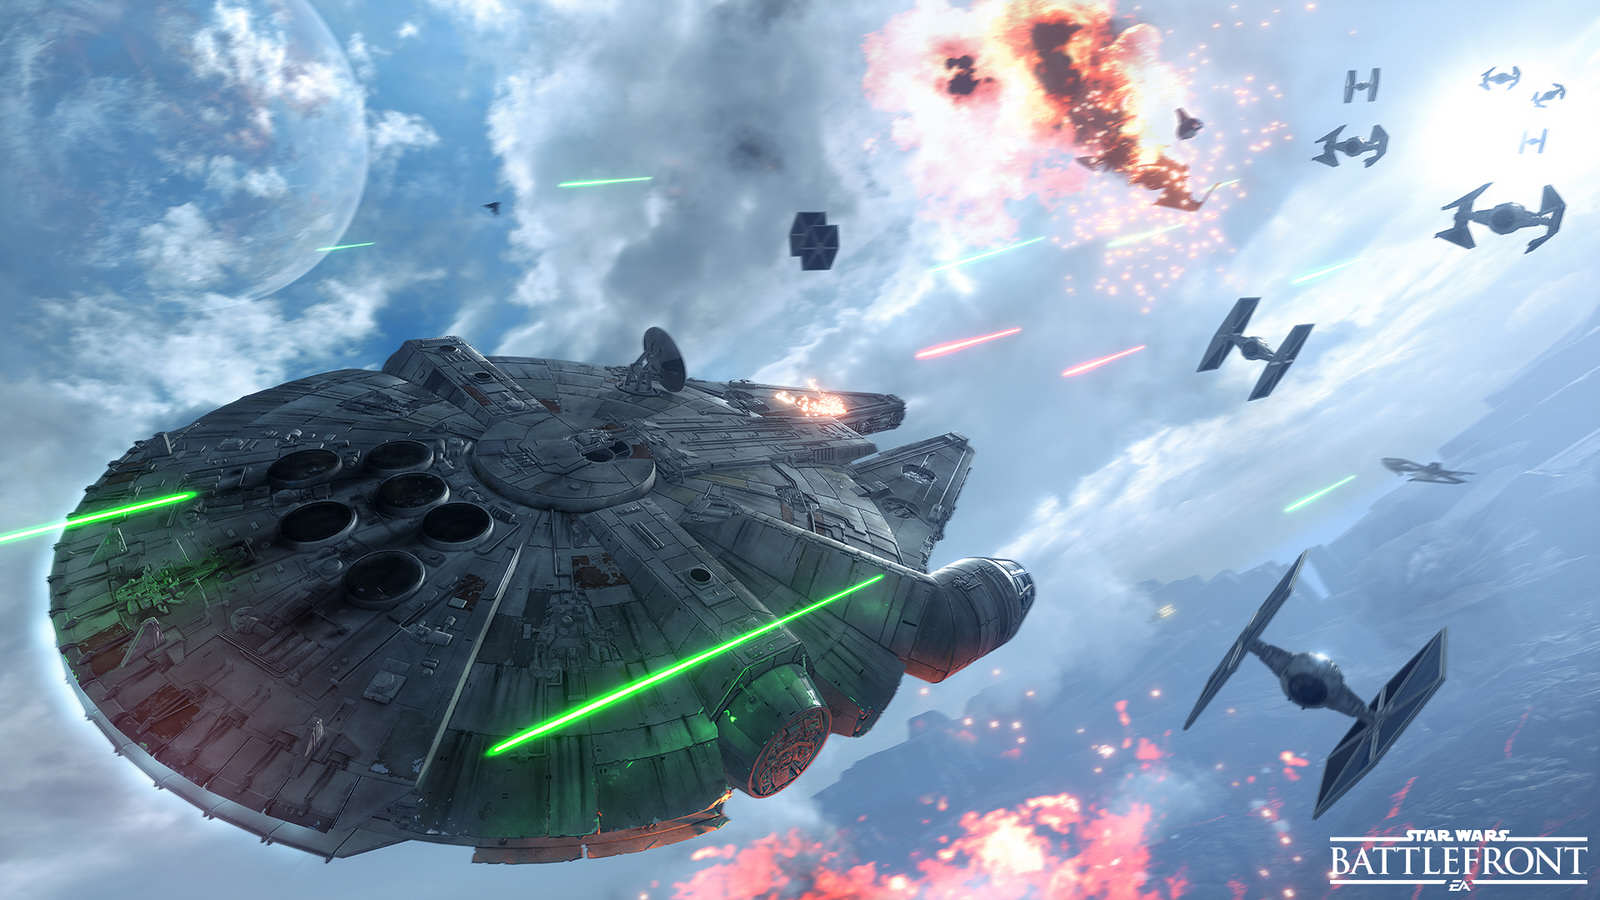 22378564061 b2eef69a83 h Star Wars Battlefront Gets A Major Update, New Maps, And More